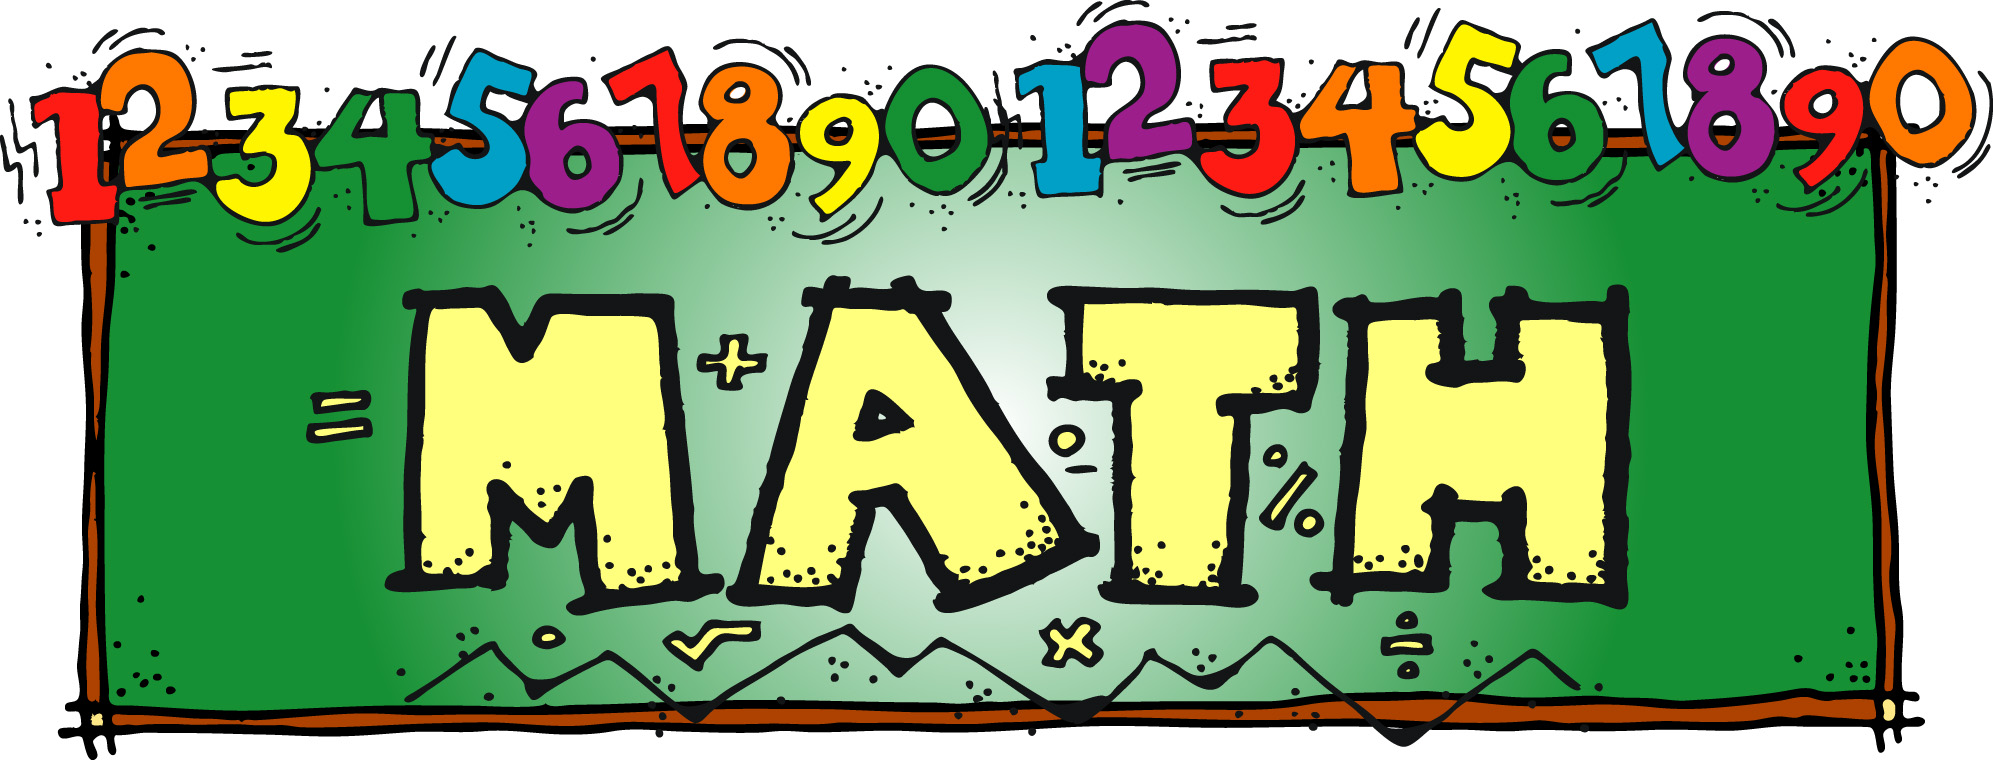 Math subject clipart image free library Free Maths Cliparts, Download Free Clip Art, Free Clip Art on ... image free library